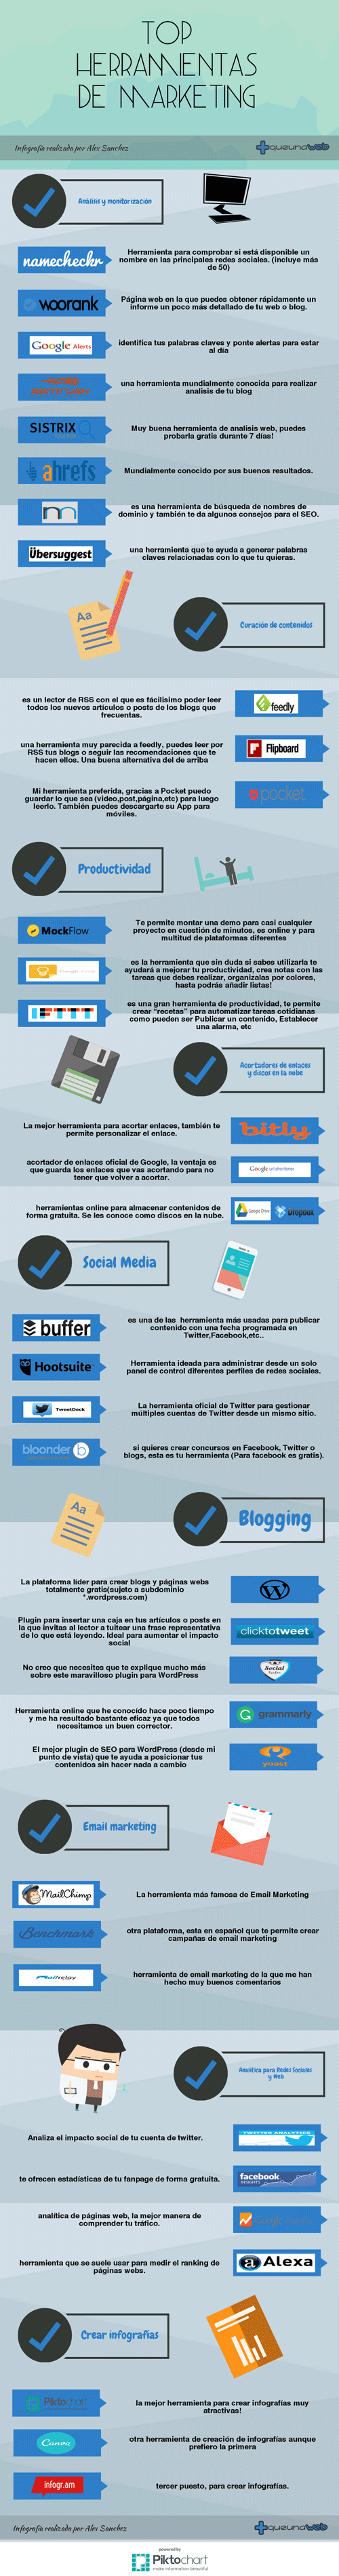 Top 36 herramientas de marketing en Internet